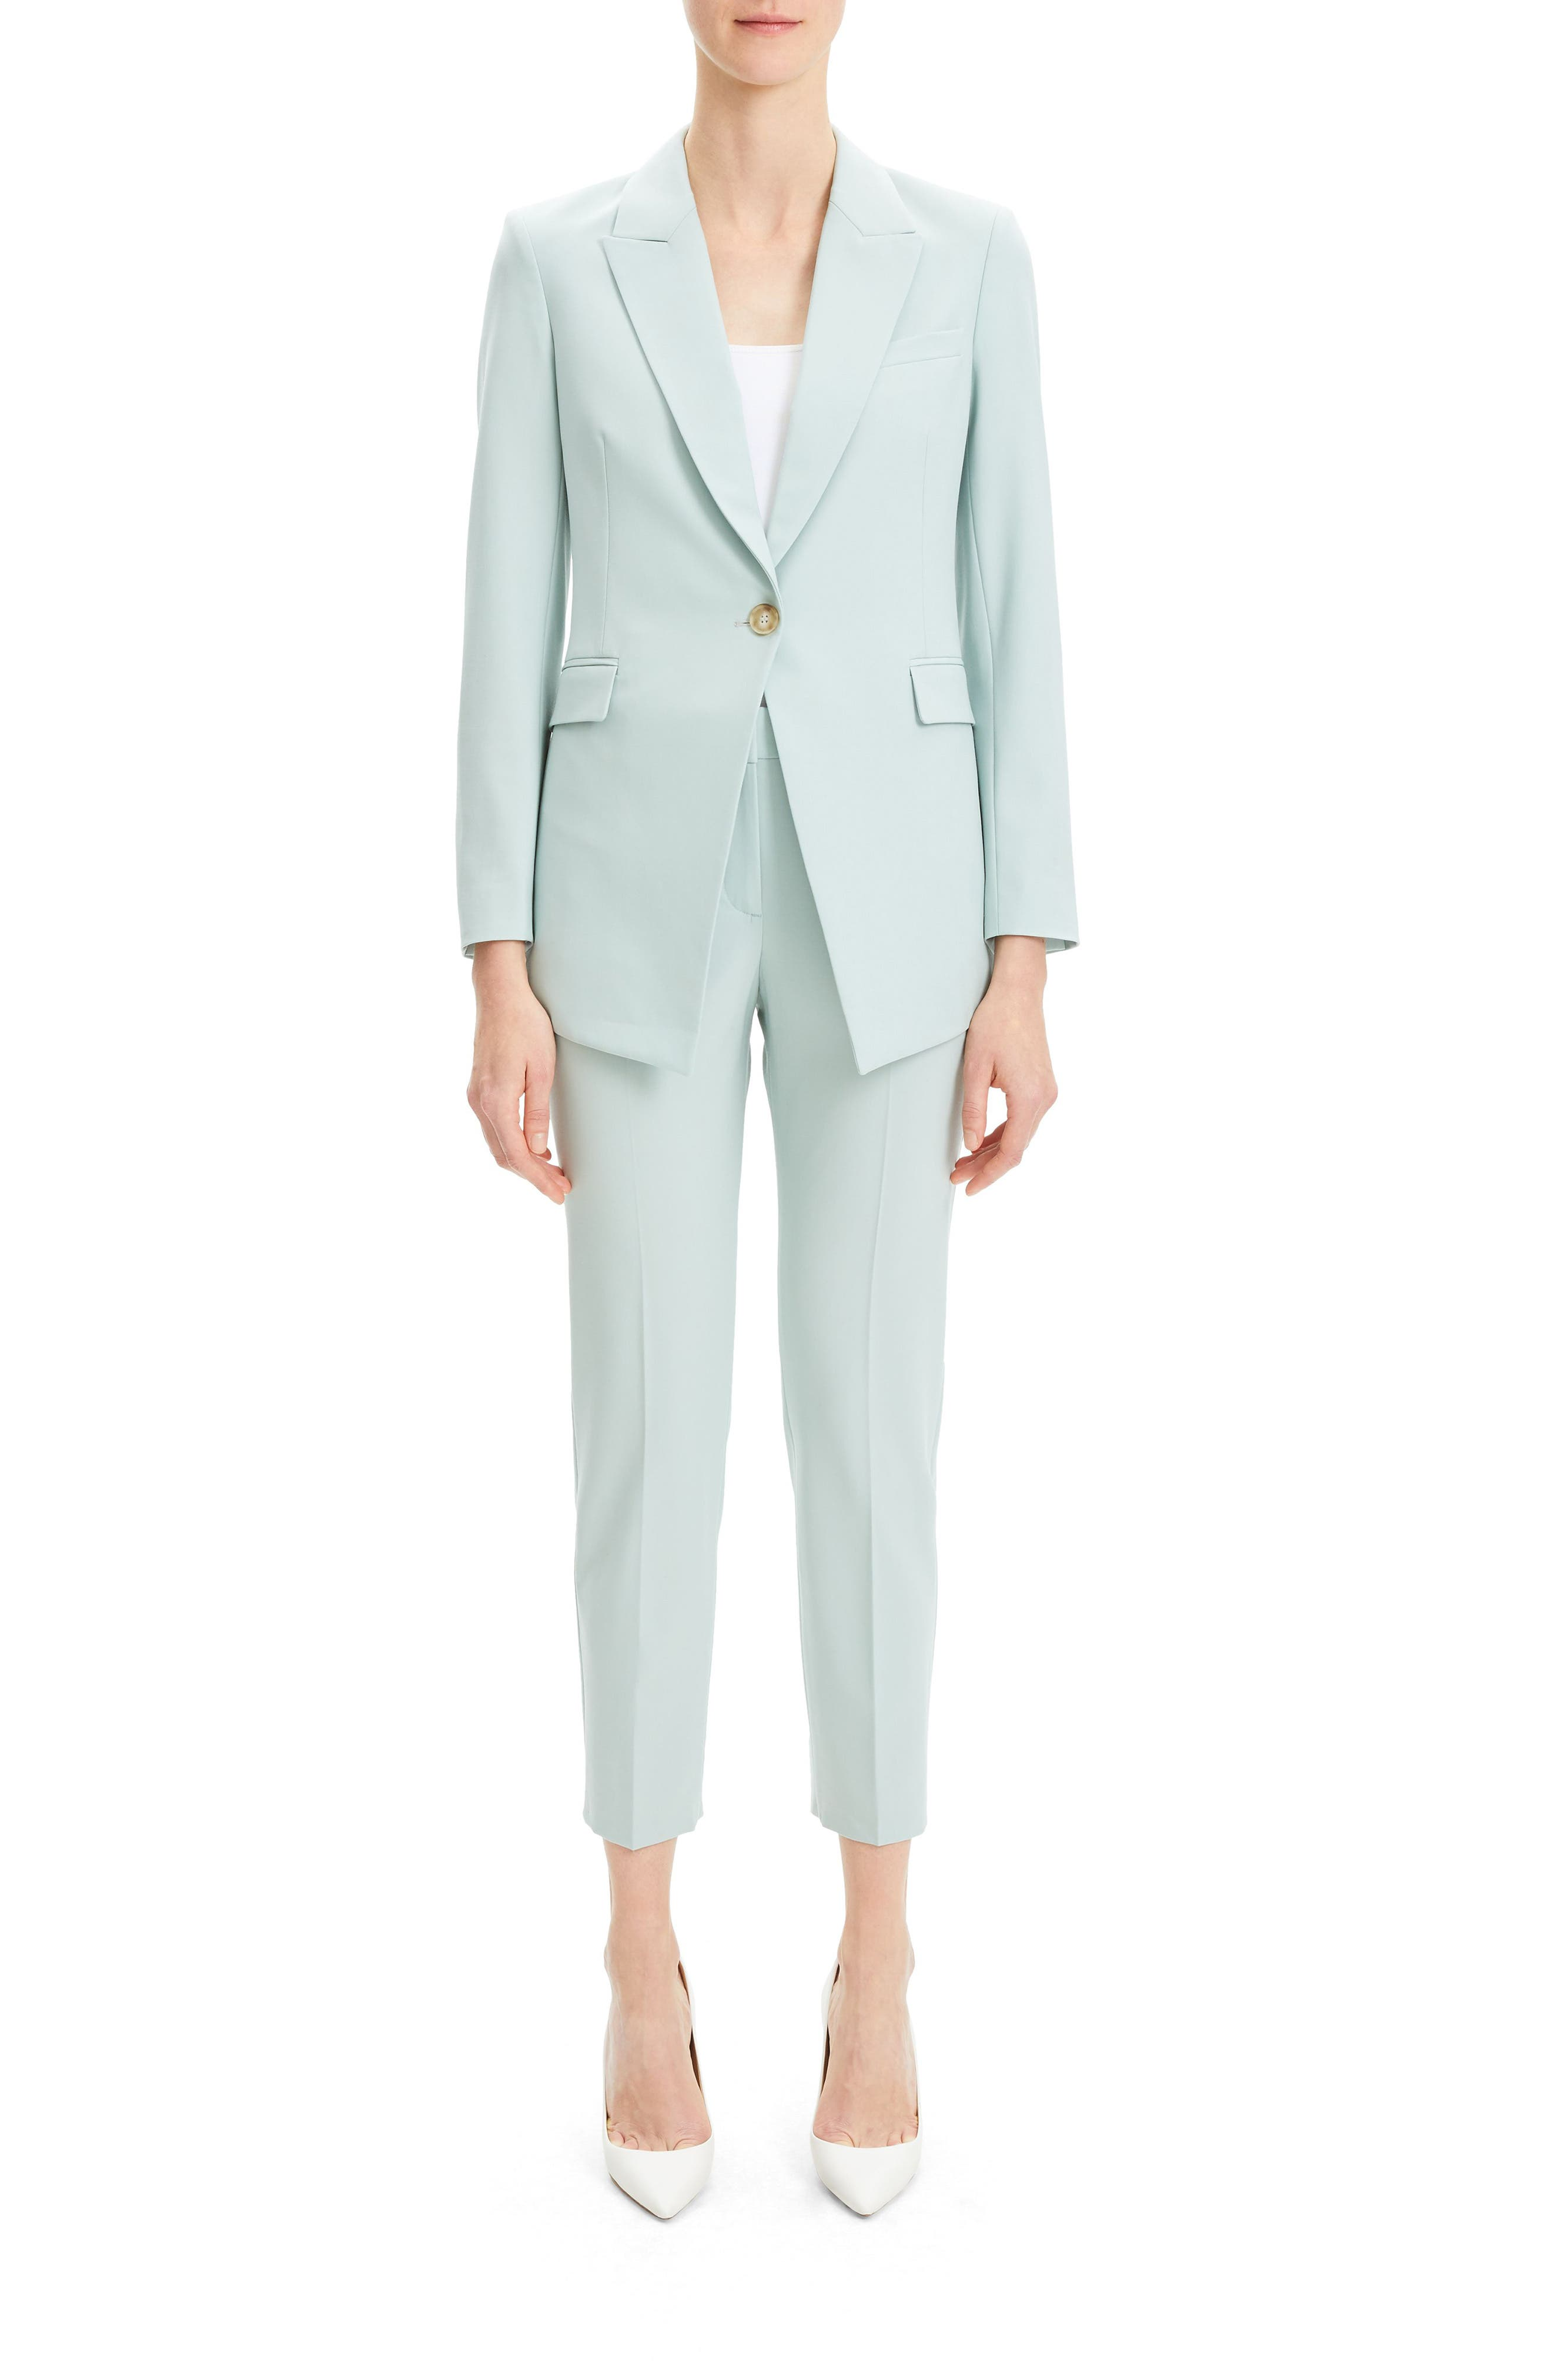 THEORY, Etienette B Good Wool Suit Jacket, Alternate thumbnail 5, color, OPAL GREEN